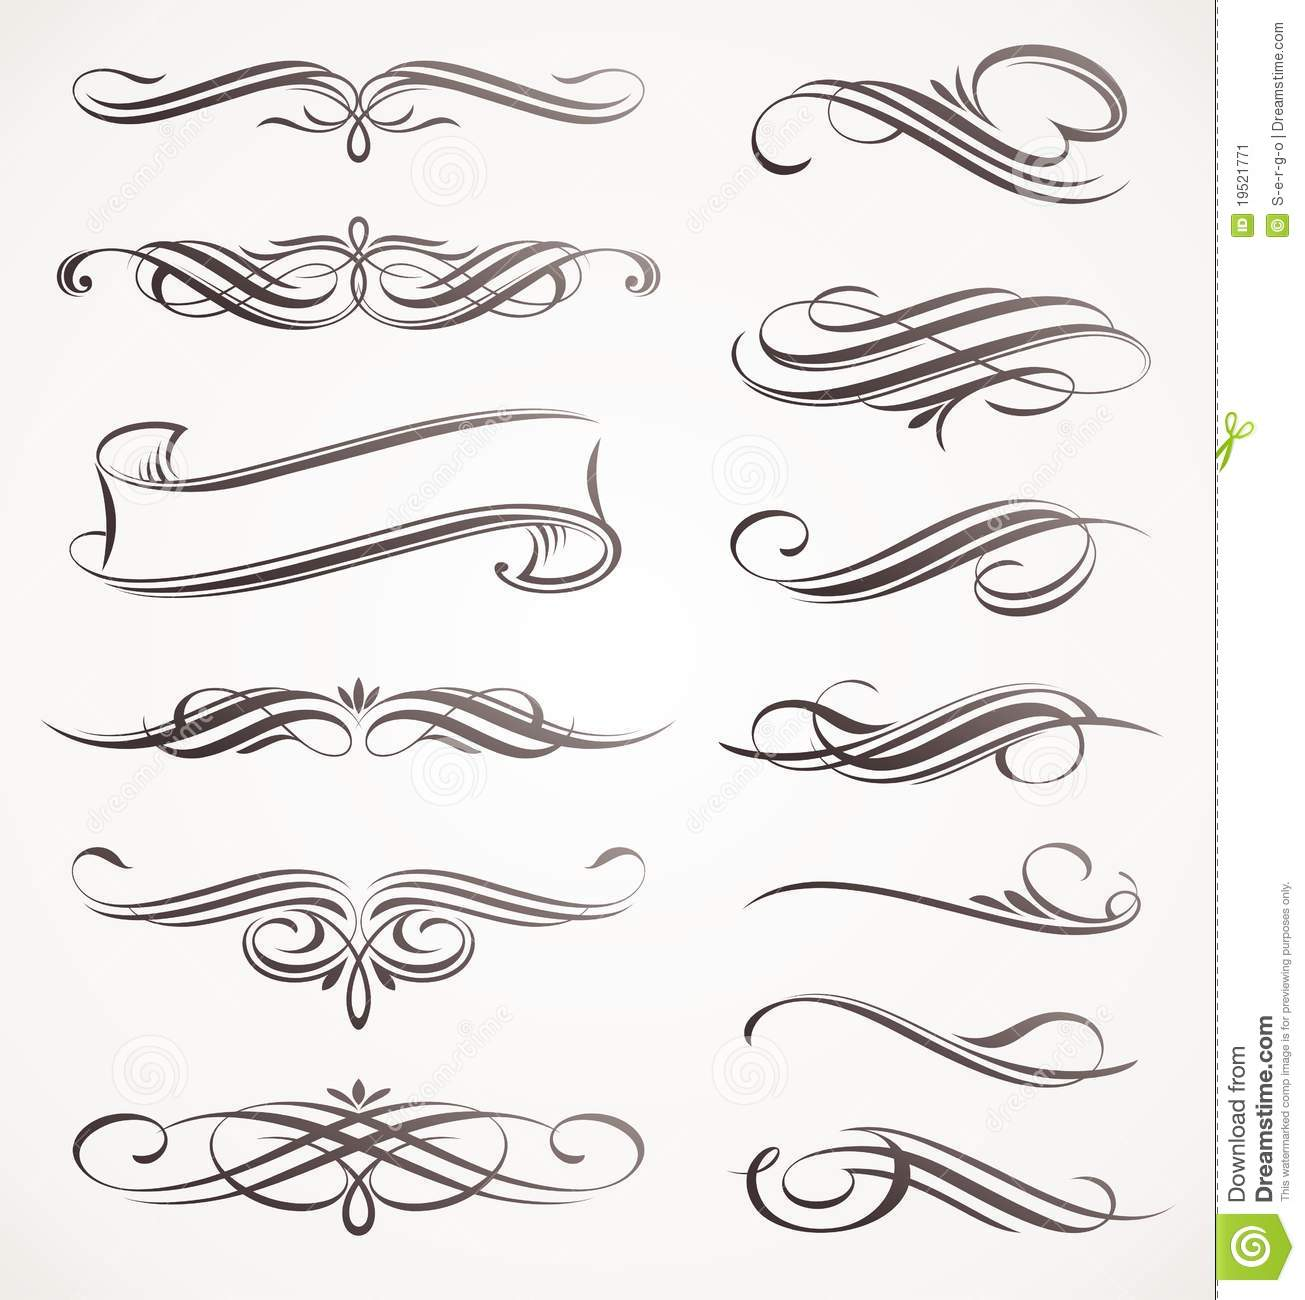 Accent Designs Calligraphic Design Elements Stock Image Image 19521771